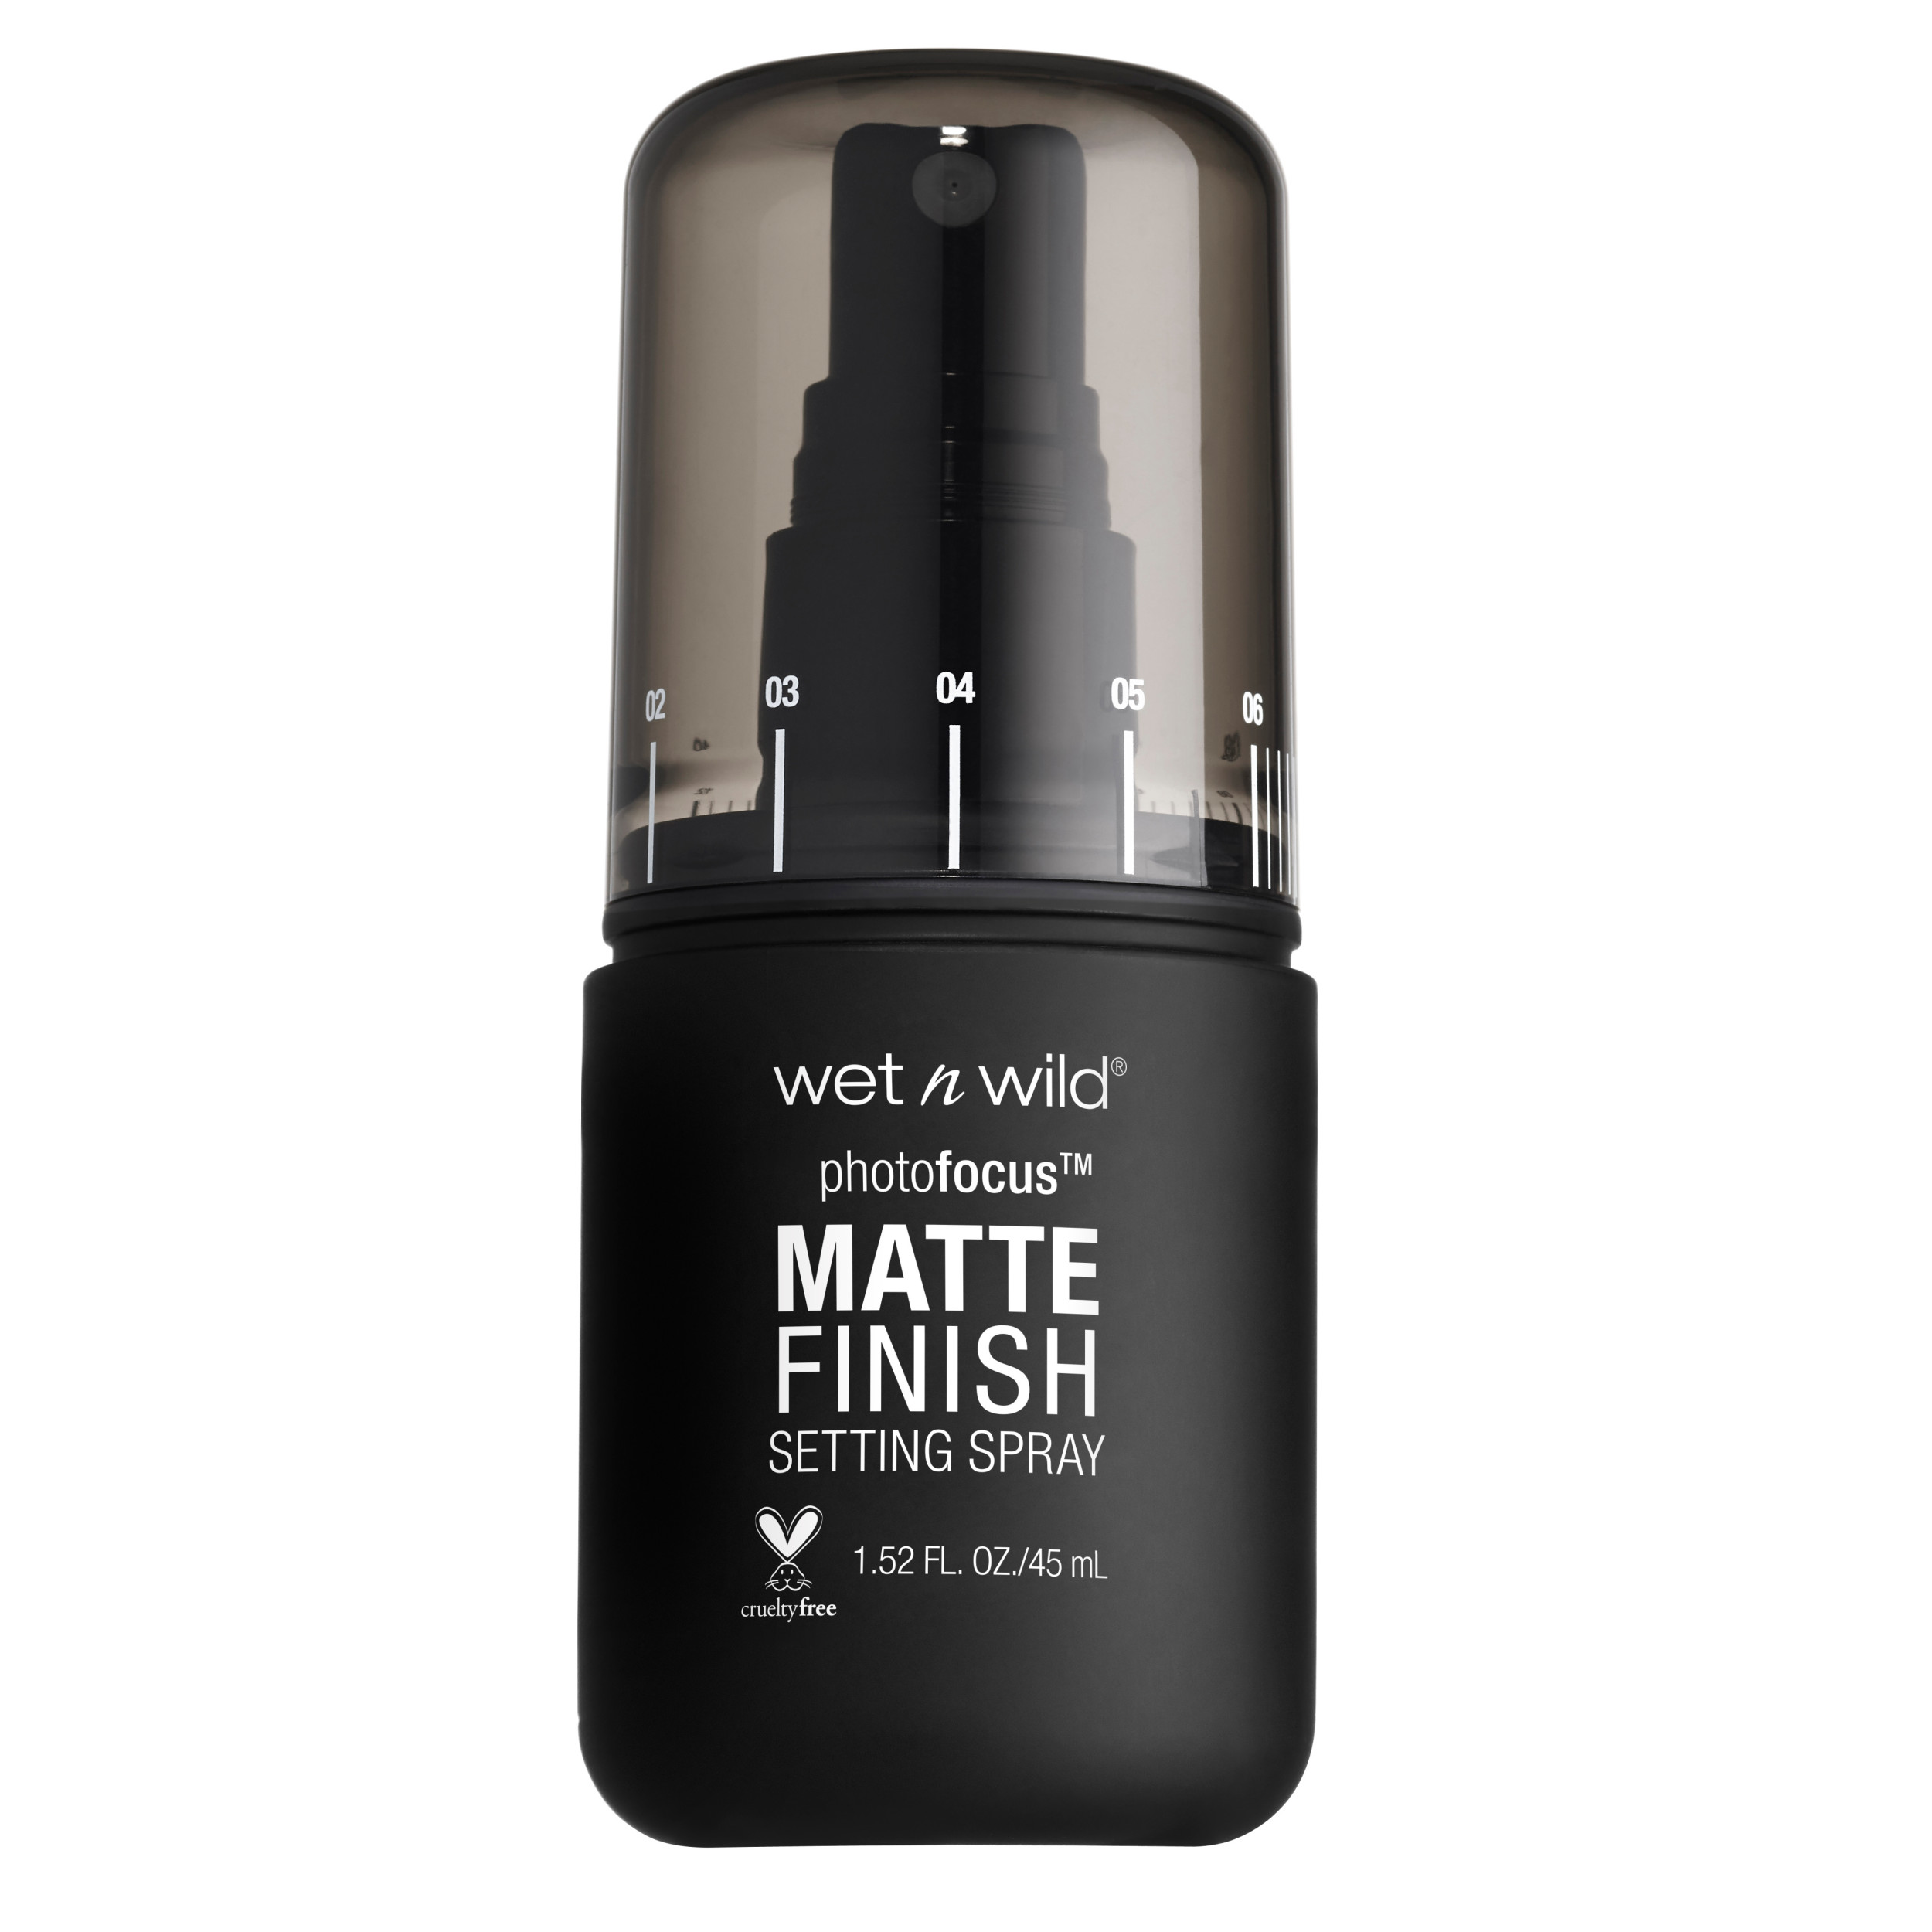 wet n wild Photo Focus Matte Finish Setting Spray, Matte Appeal